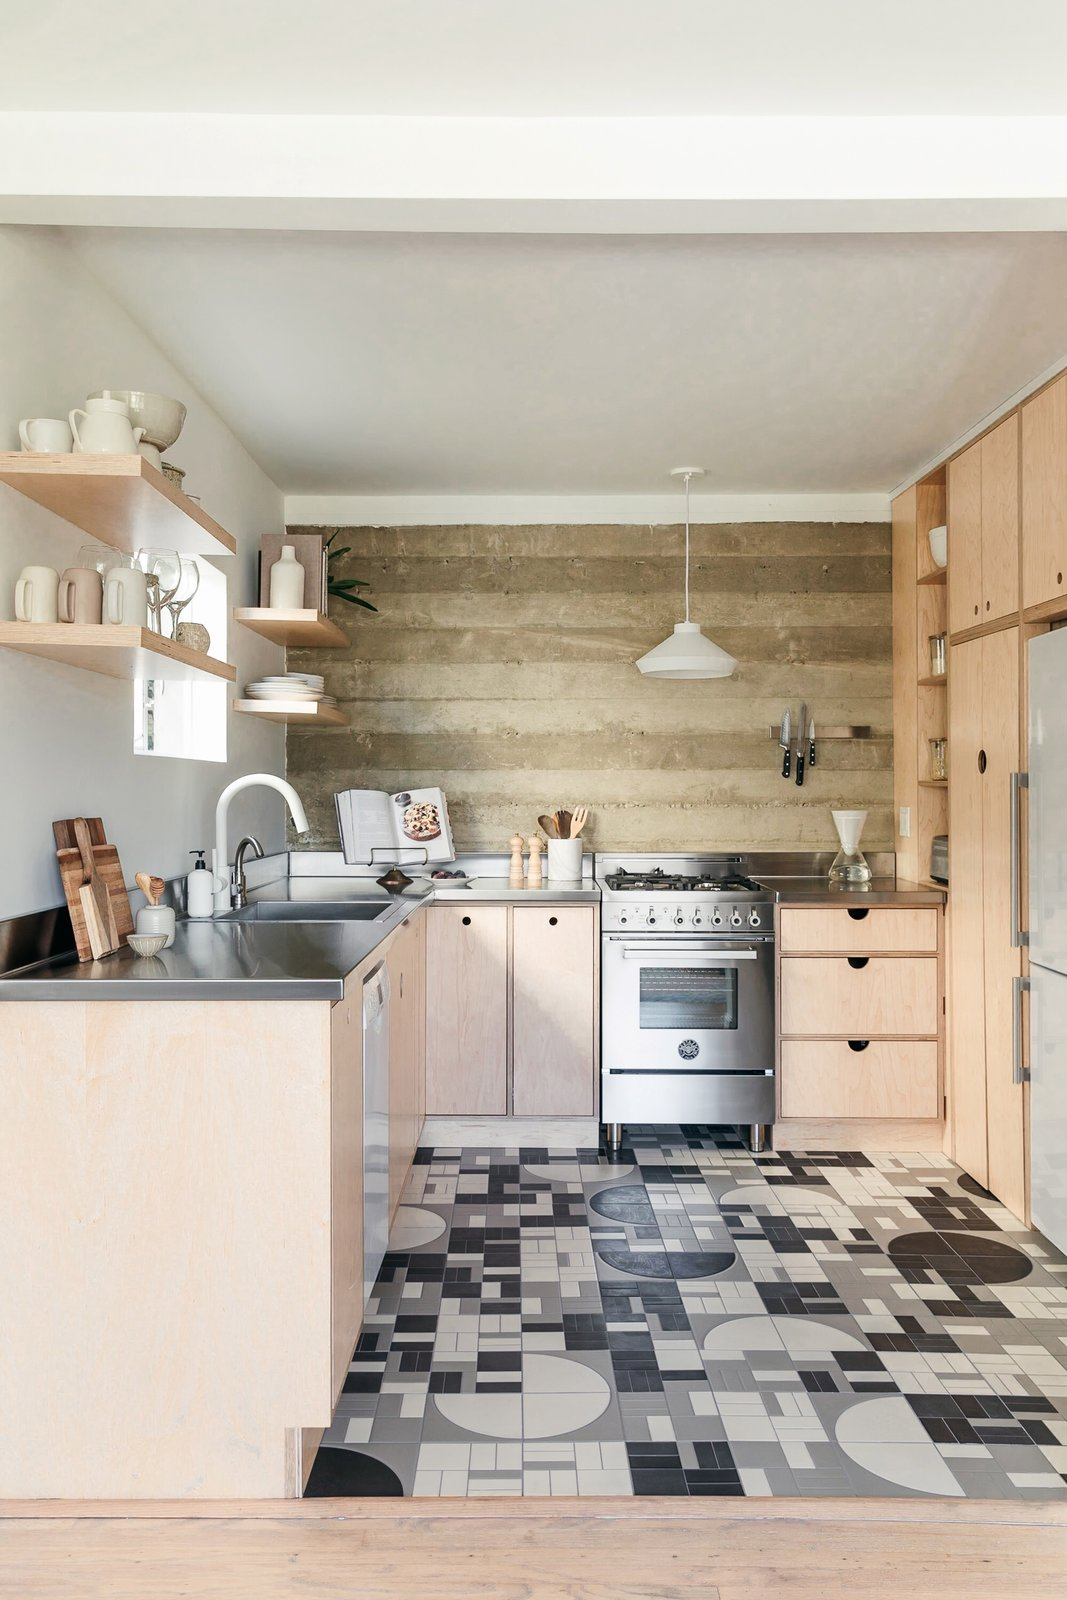 Guest Kitchen by Taylor and Taylor kitchen